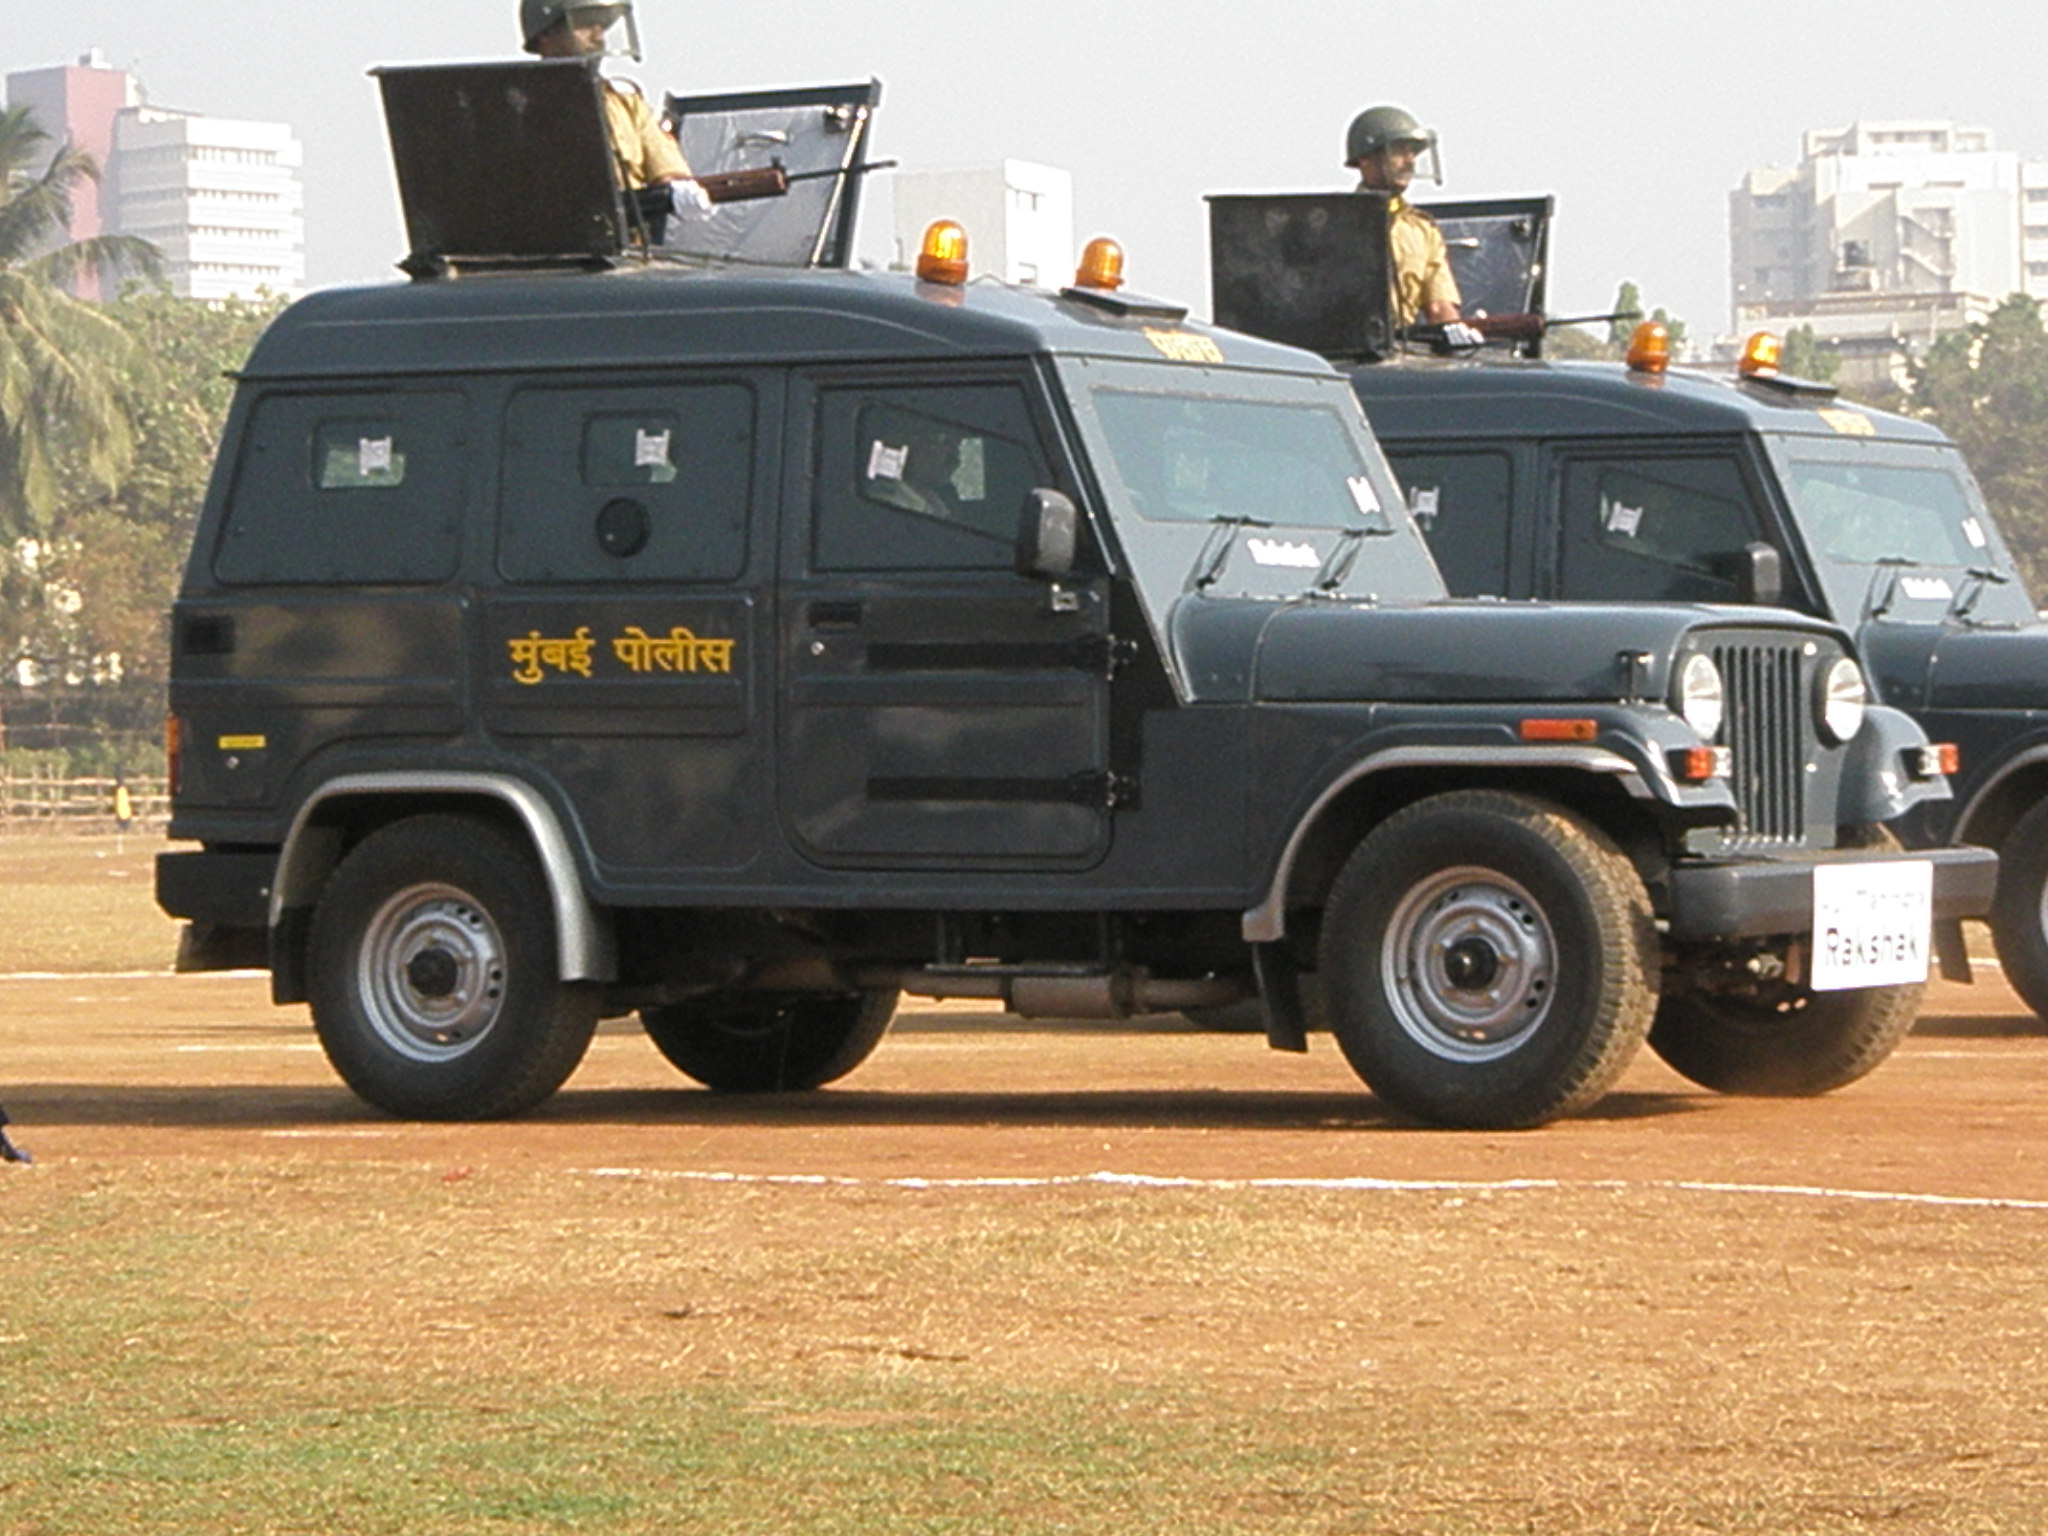 mumbai police The mumbai police (also known as brihanmumbai police) is the police force of the city of mumbai, maharashtra it is a part of maharashtra police and has the primary responsibilities of law enforcement and investigation within the limits of mumbai.